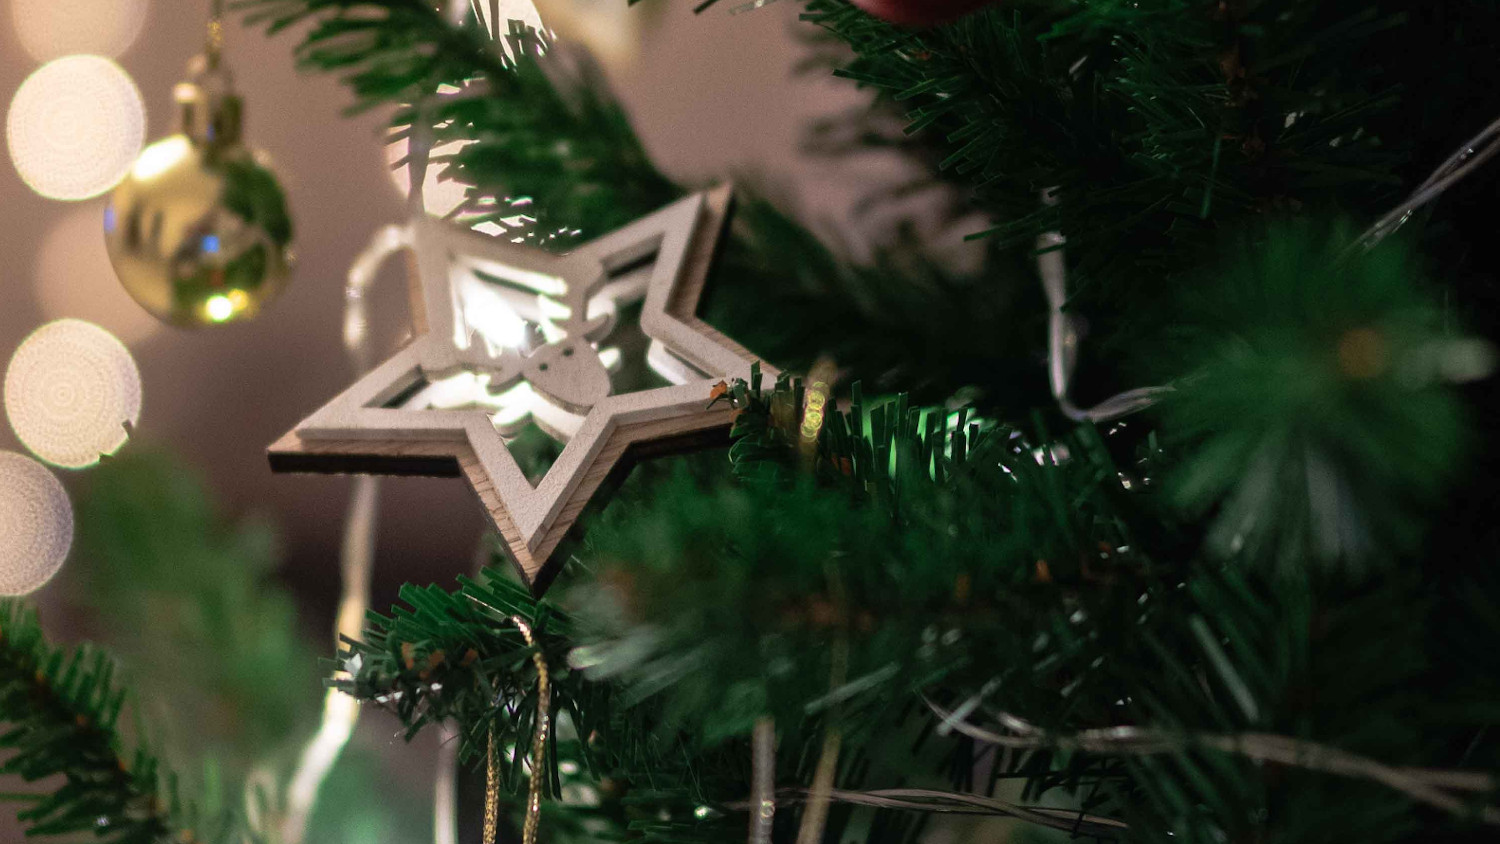 A star ornament on a Christmas Tree